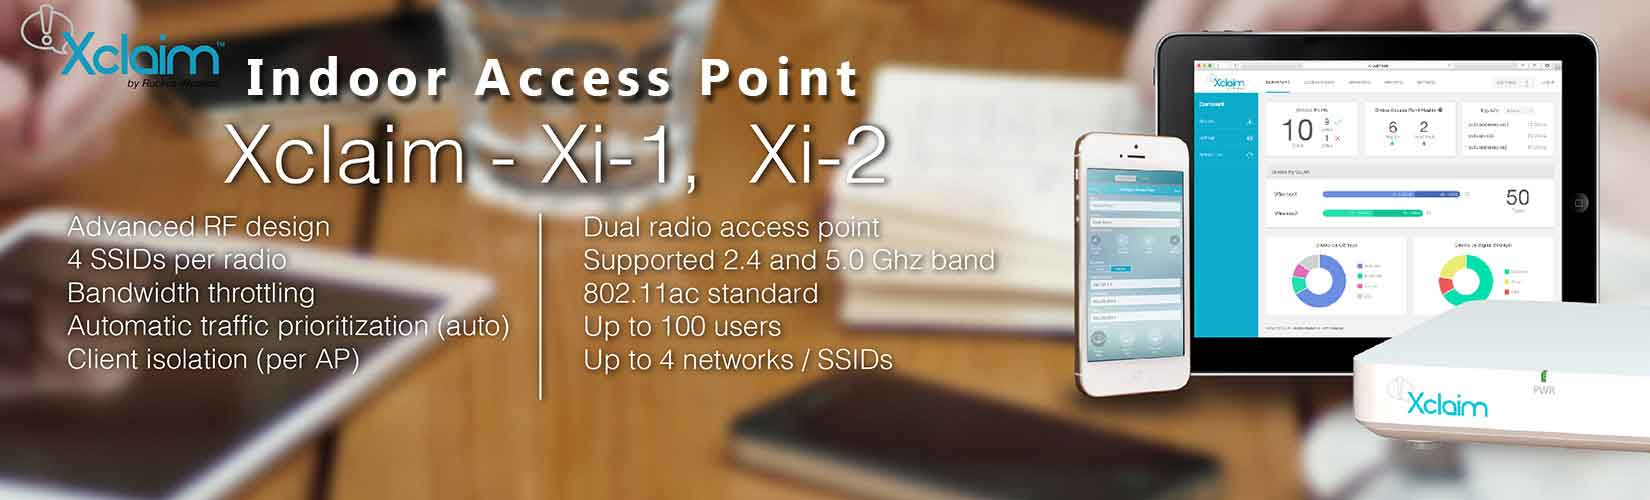 Xclaim- Indoor Access Point